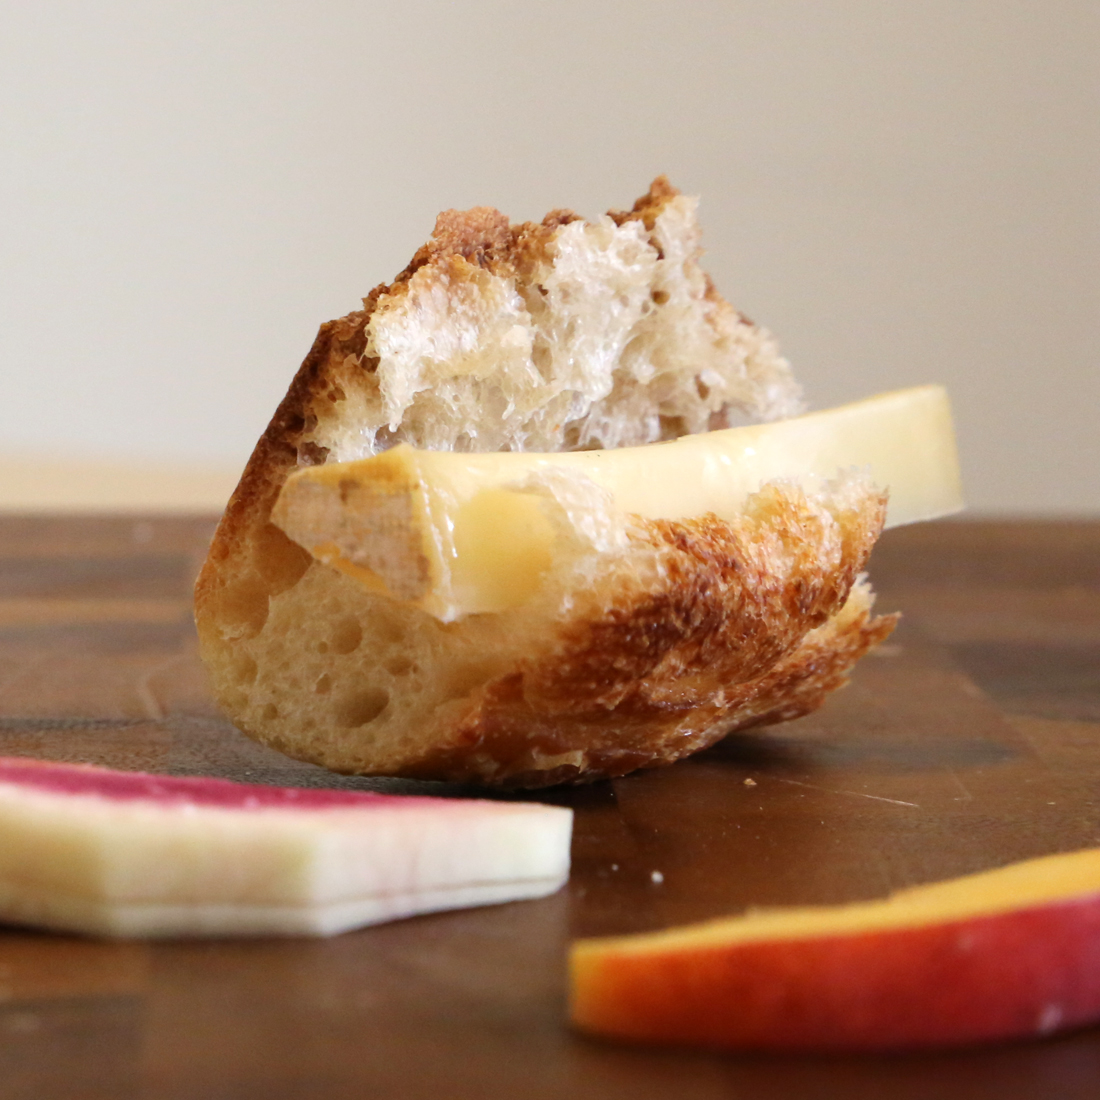 Cheese, Bread, and Fruit